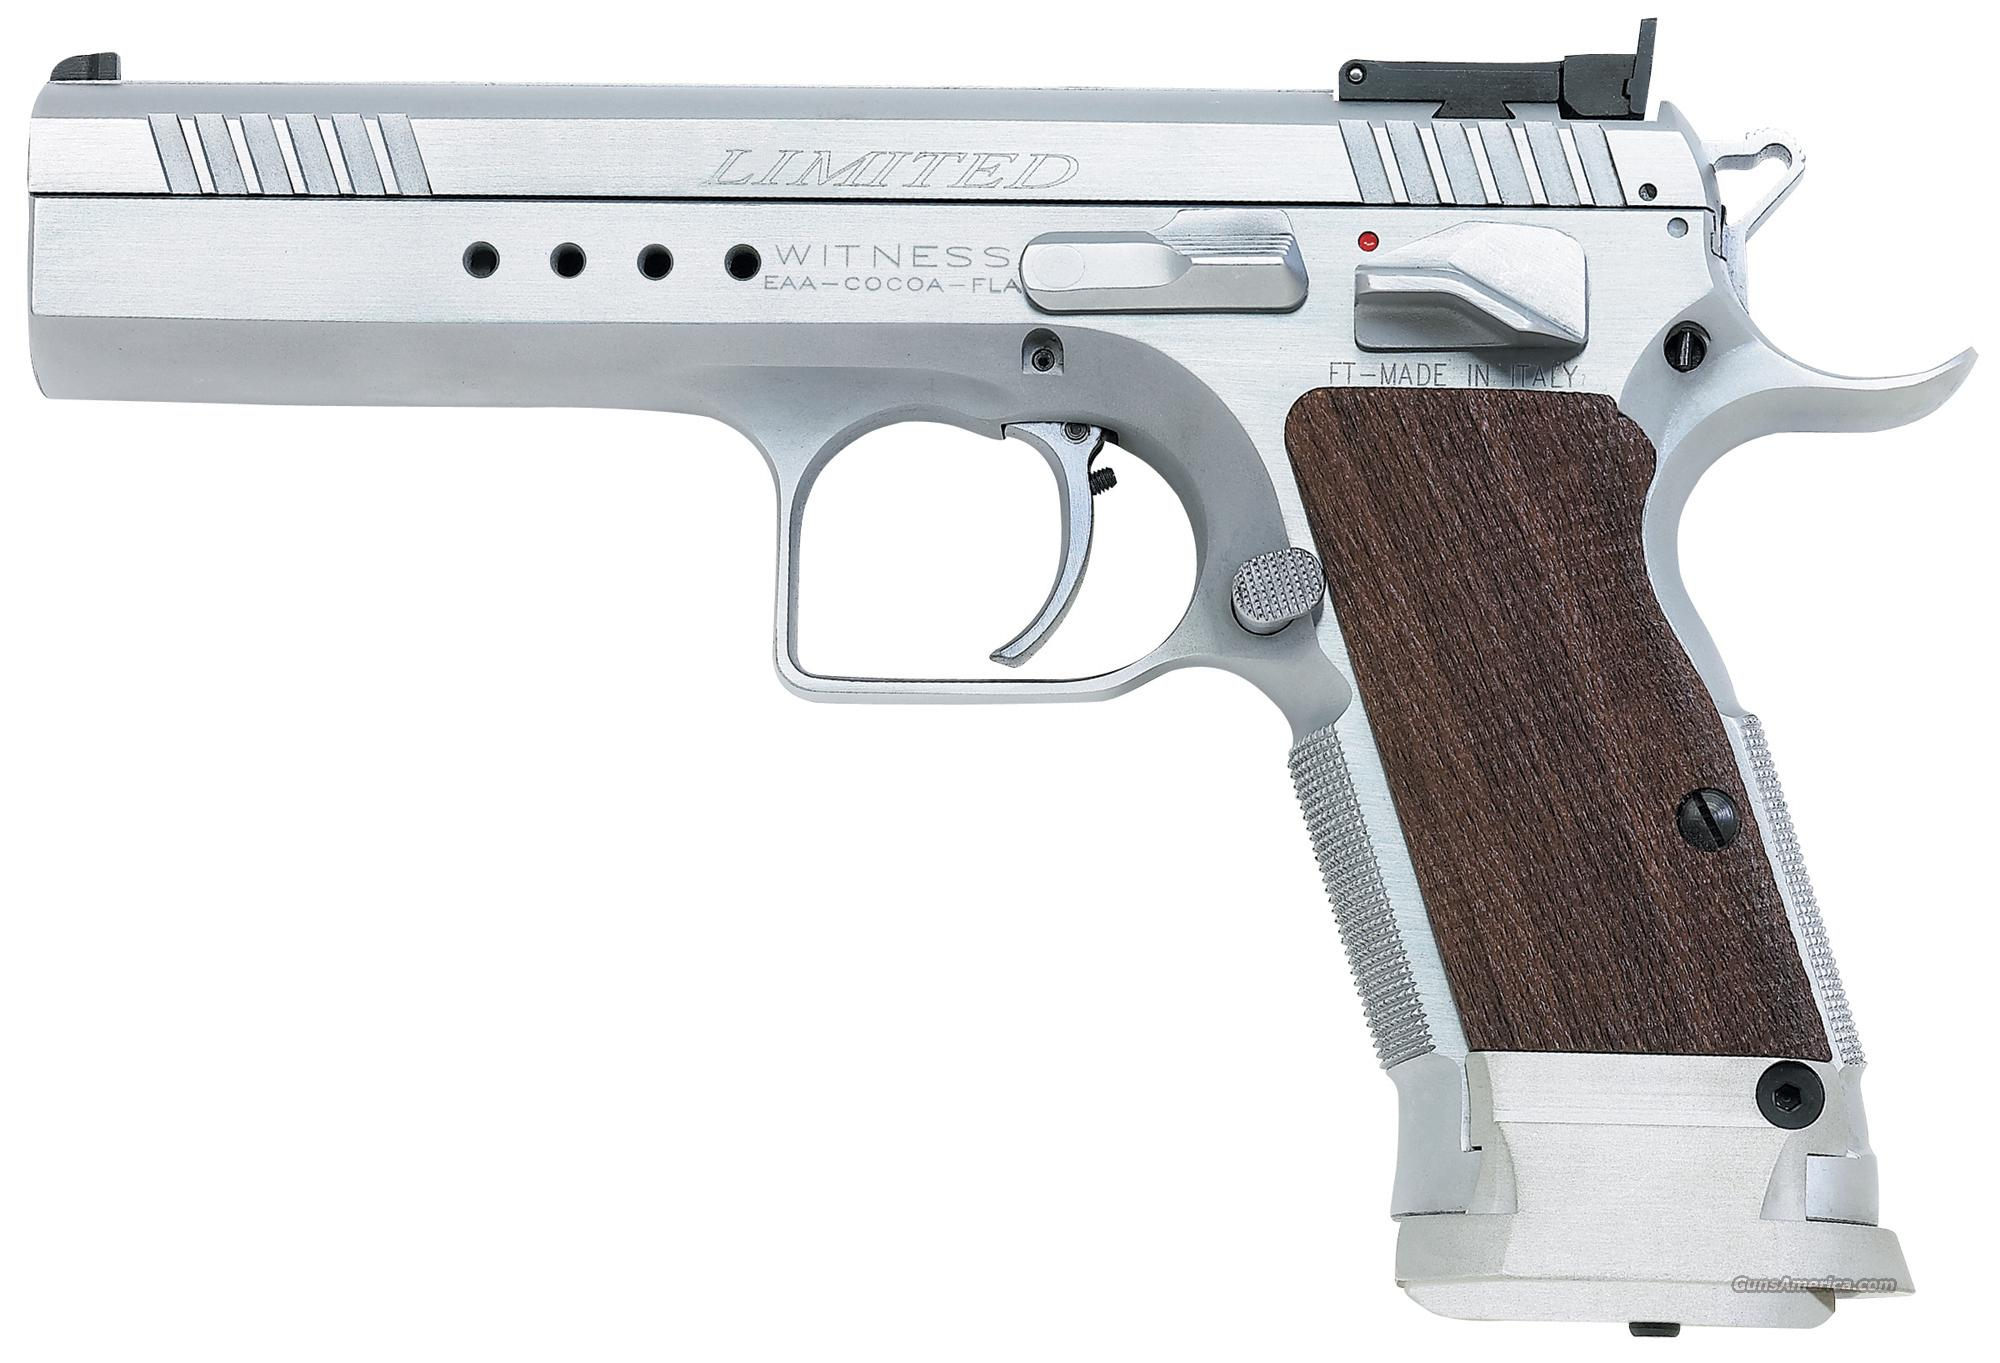 EAA Witness Elite Limited 10mm Tanfoglio 15 Round Hard Chrome *NEW* 600343  Guns > Pistols > EAA Pistols > Other